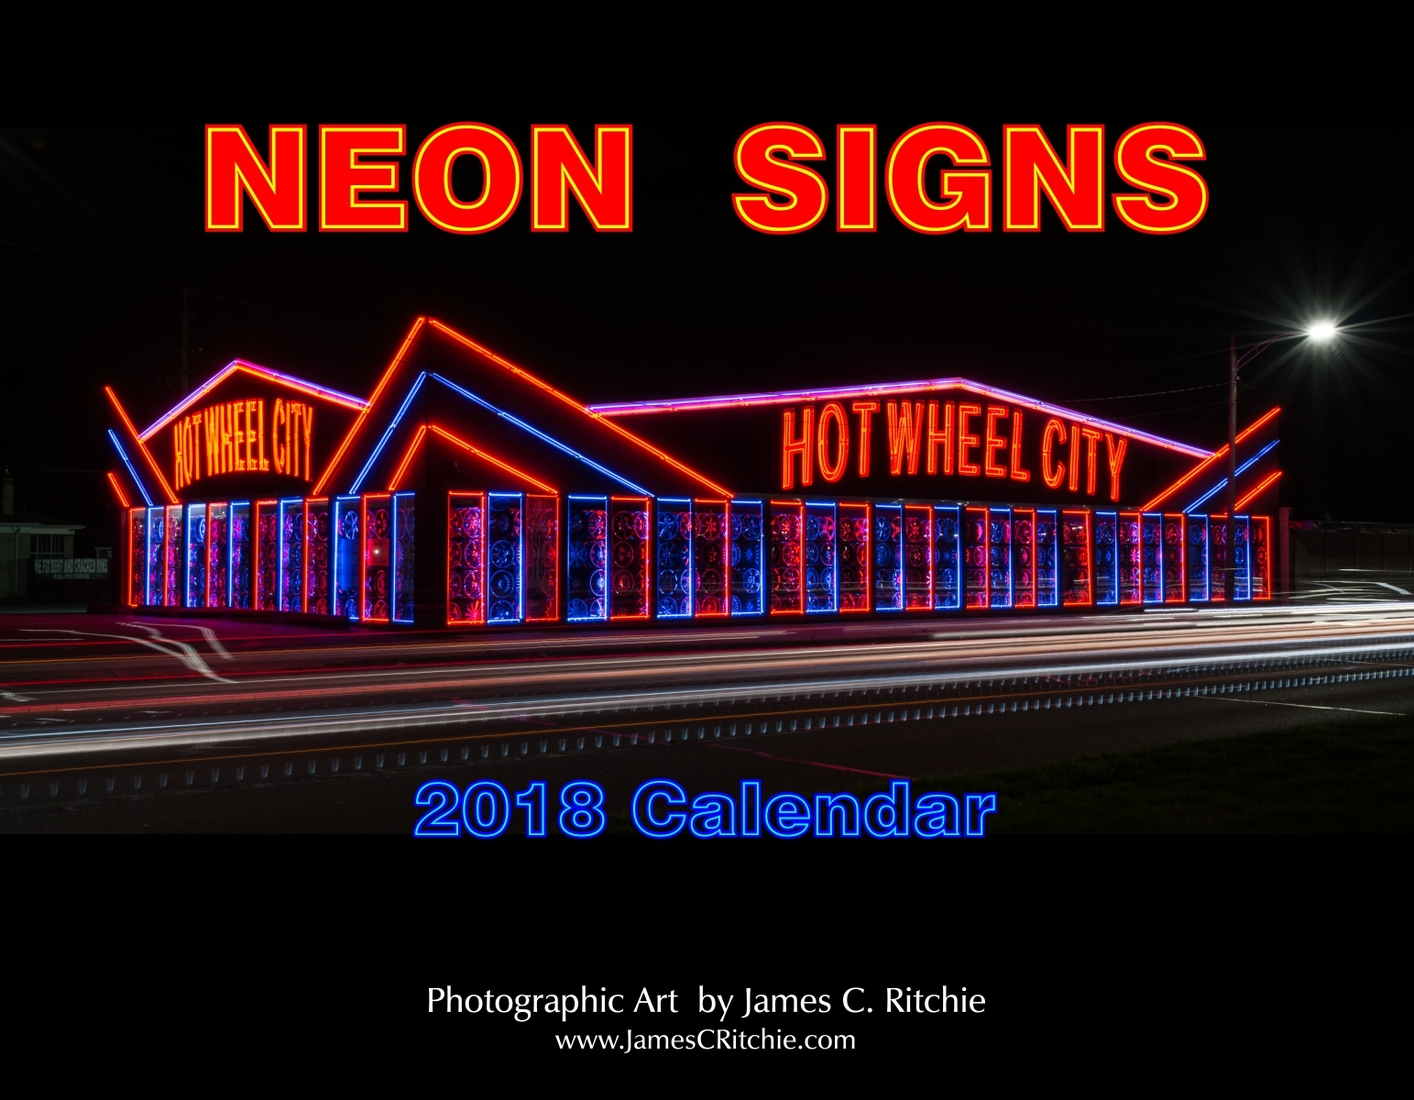 James C. Ritchie Photographic Art 2018 Neon Calendar